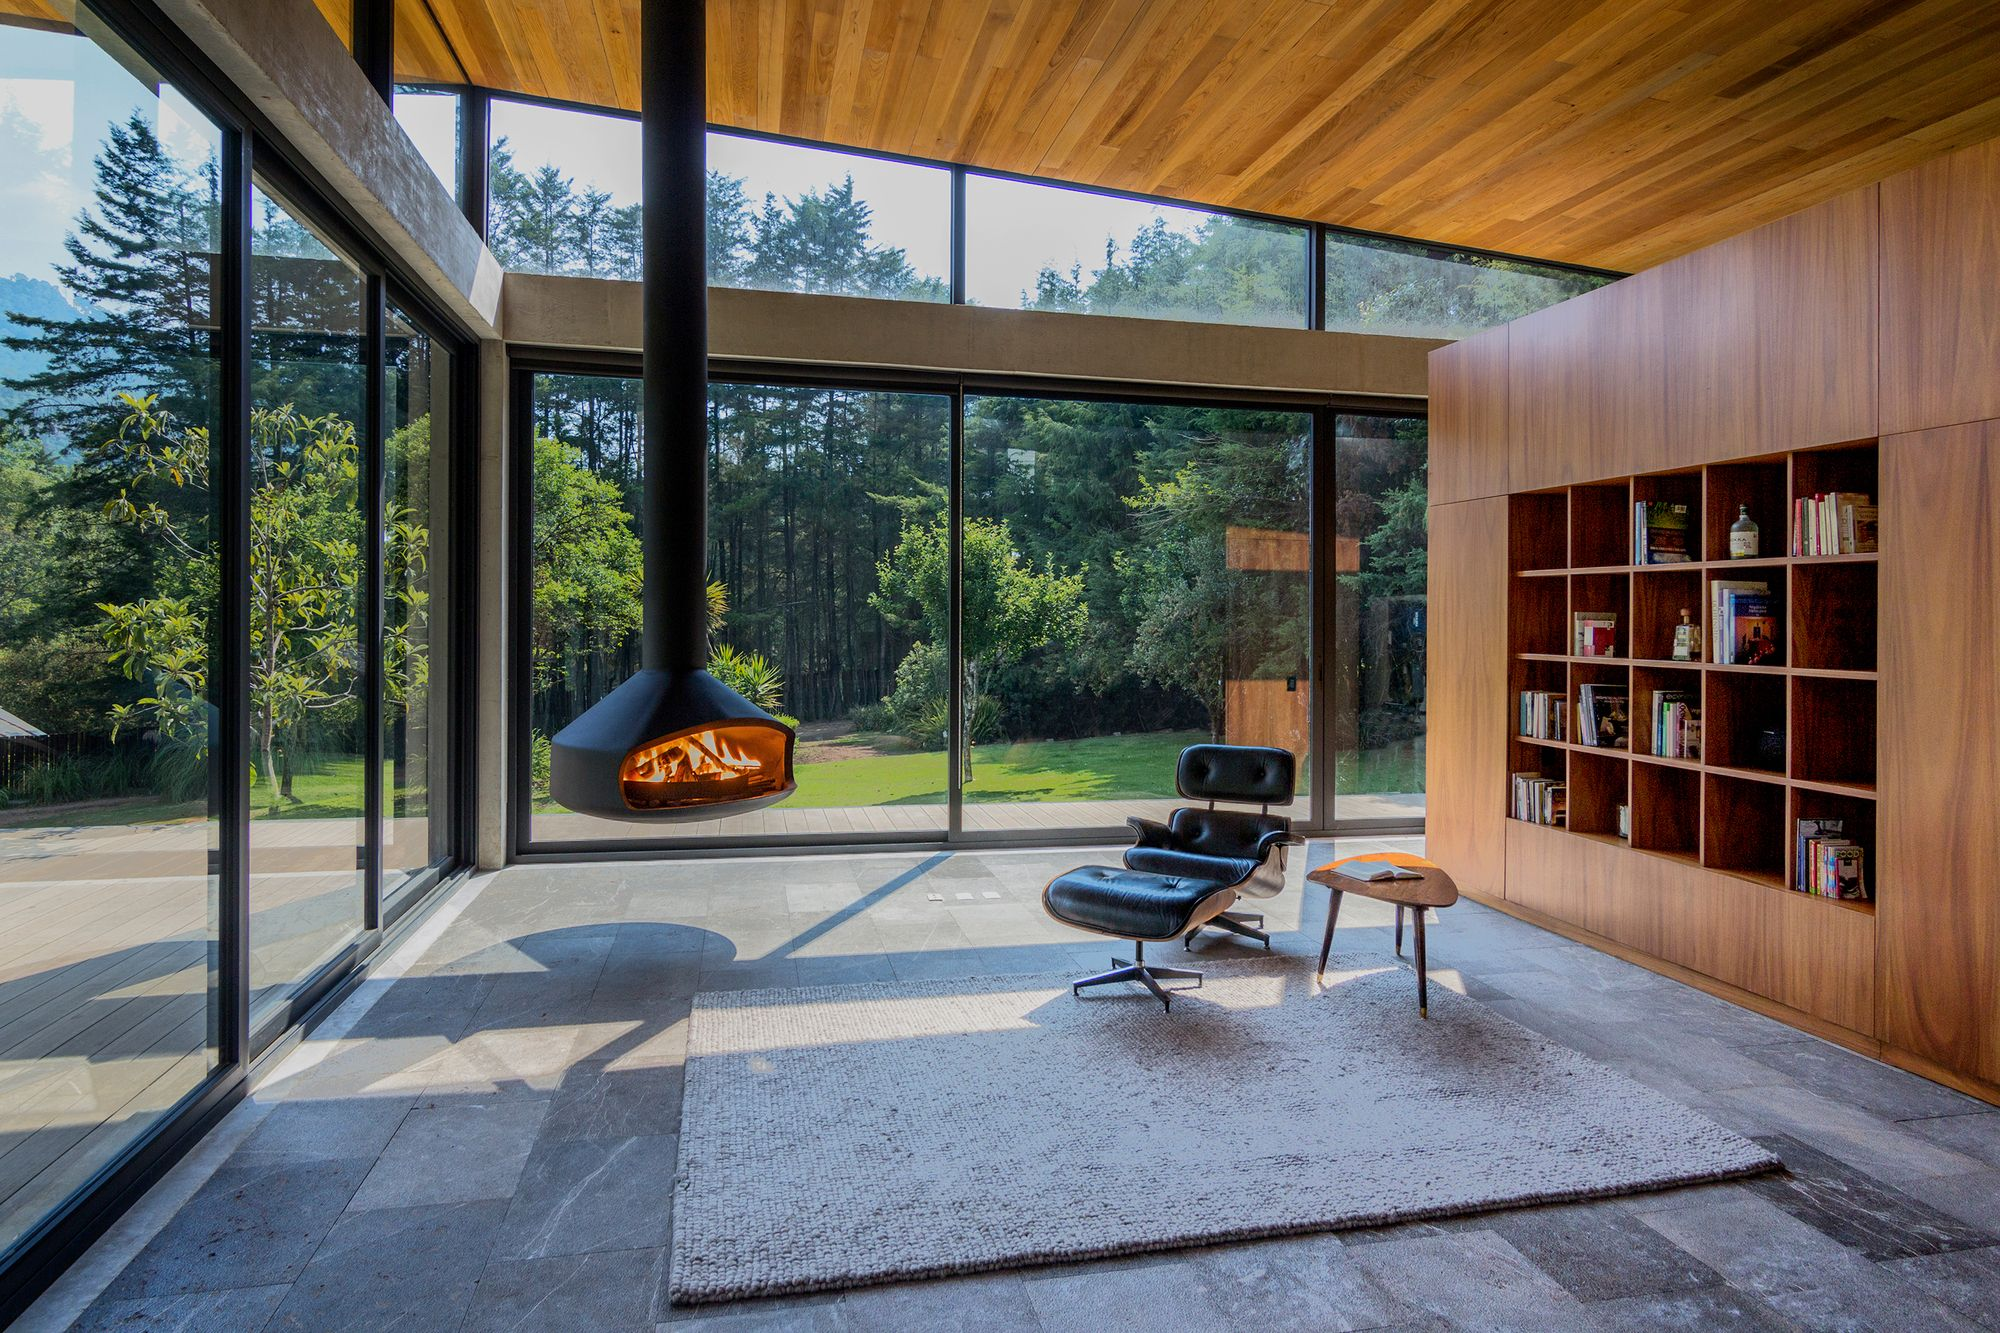 Sp residence weber arquitectos architecture interiors and